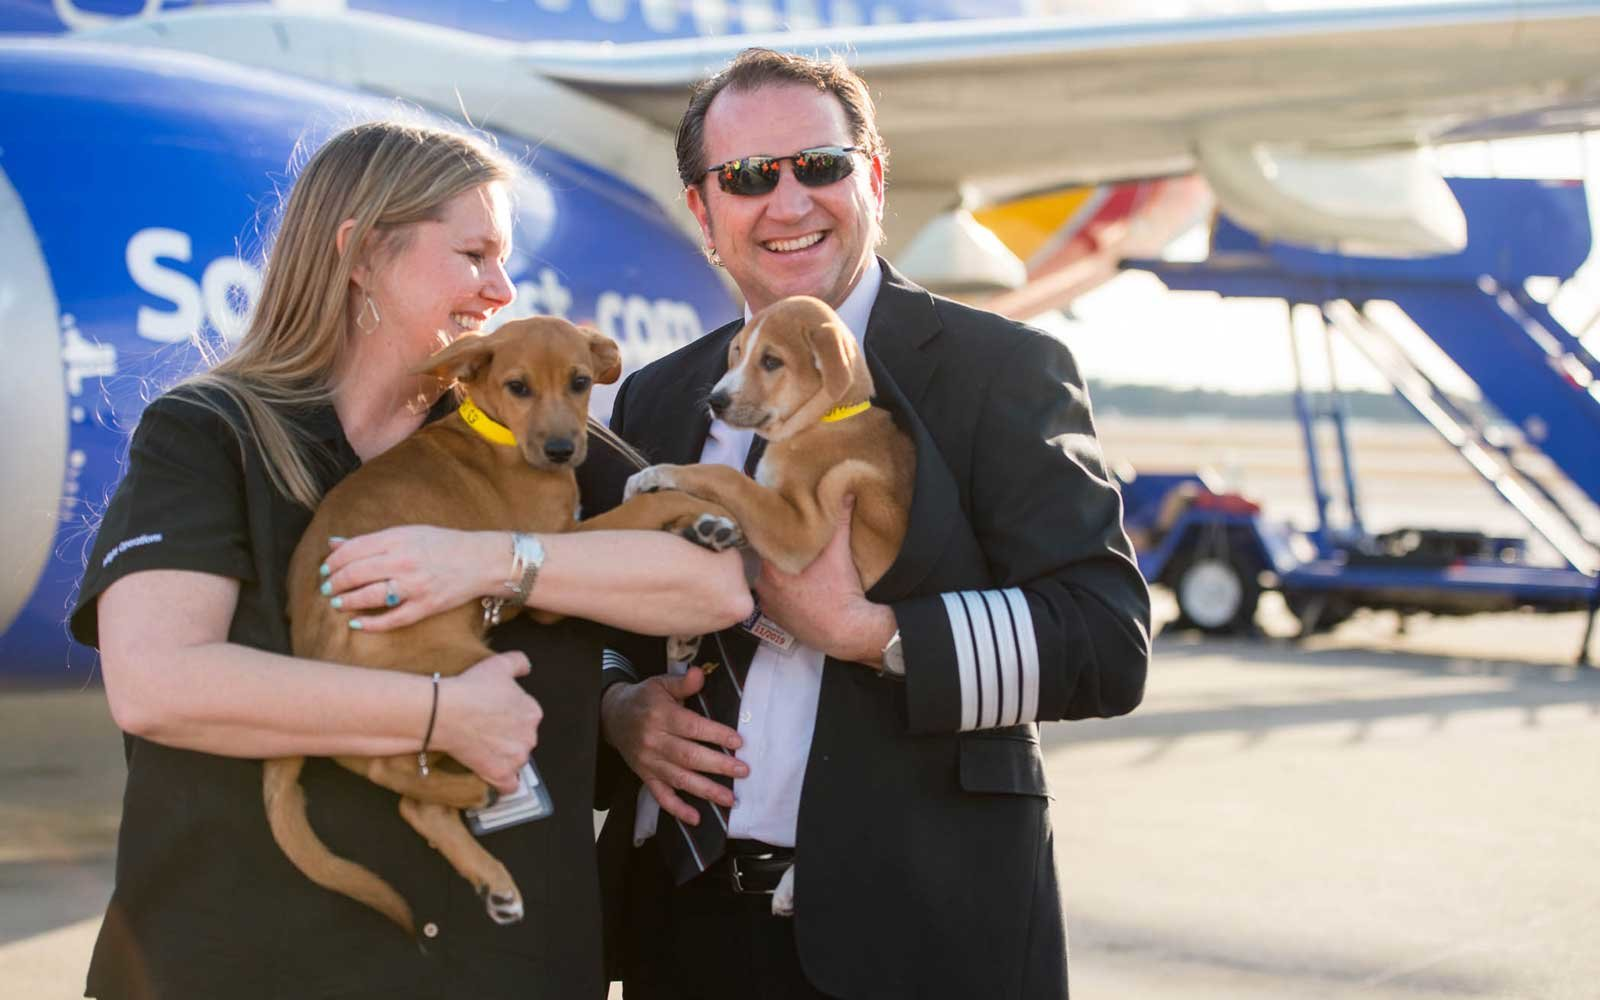 Southwest rescue flight to Puerto Rico to save puppies and kittens